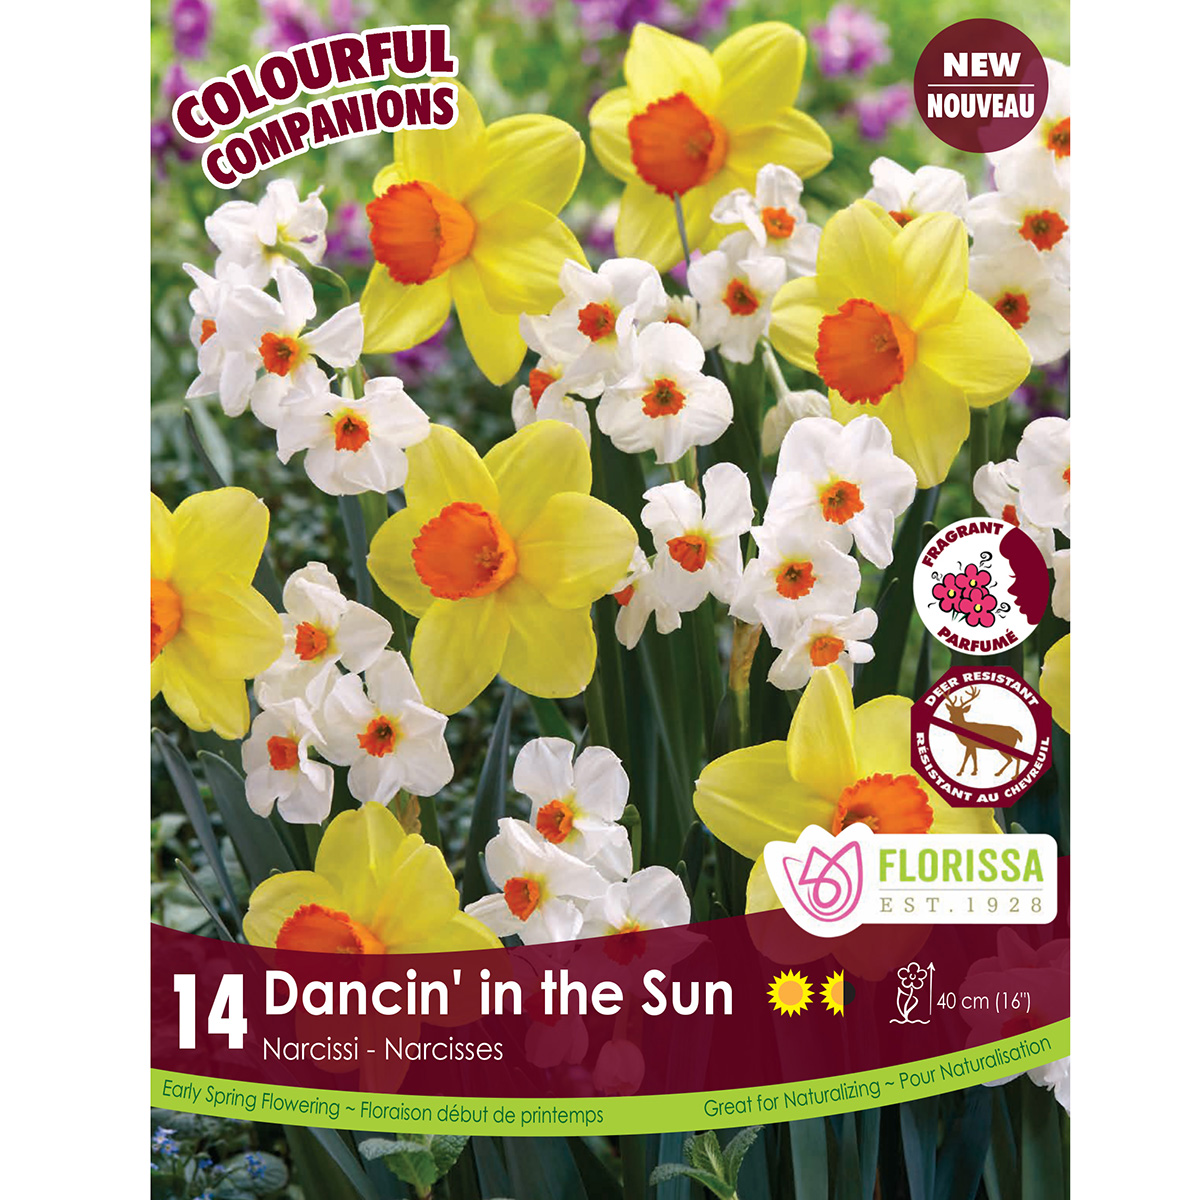 Colourful Companions 'Dancin' In the Sun' Bulbs